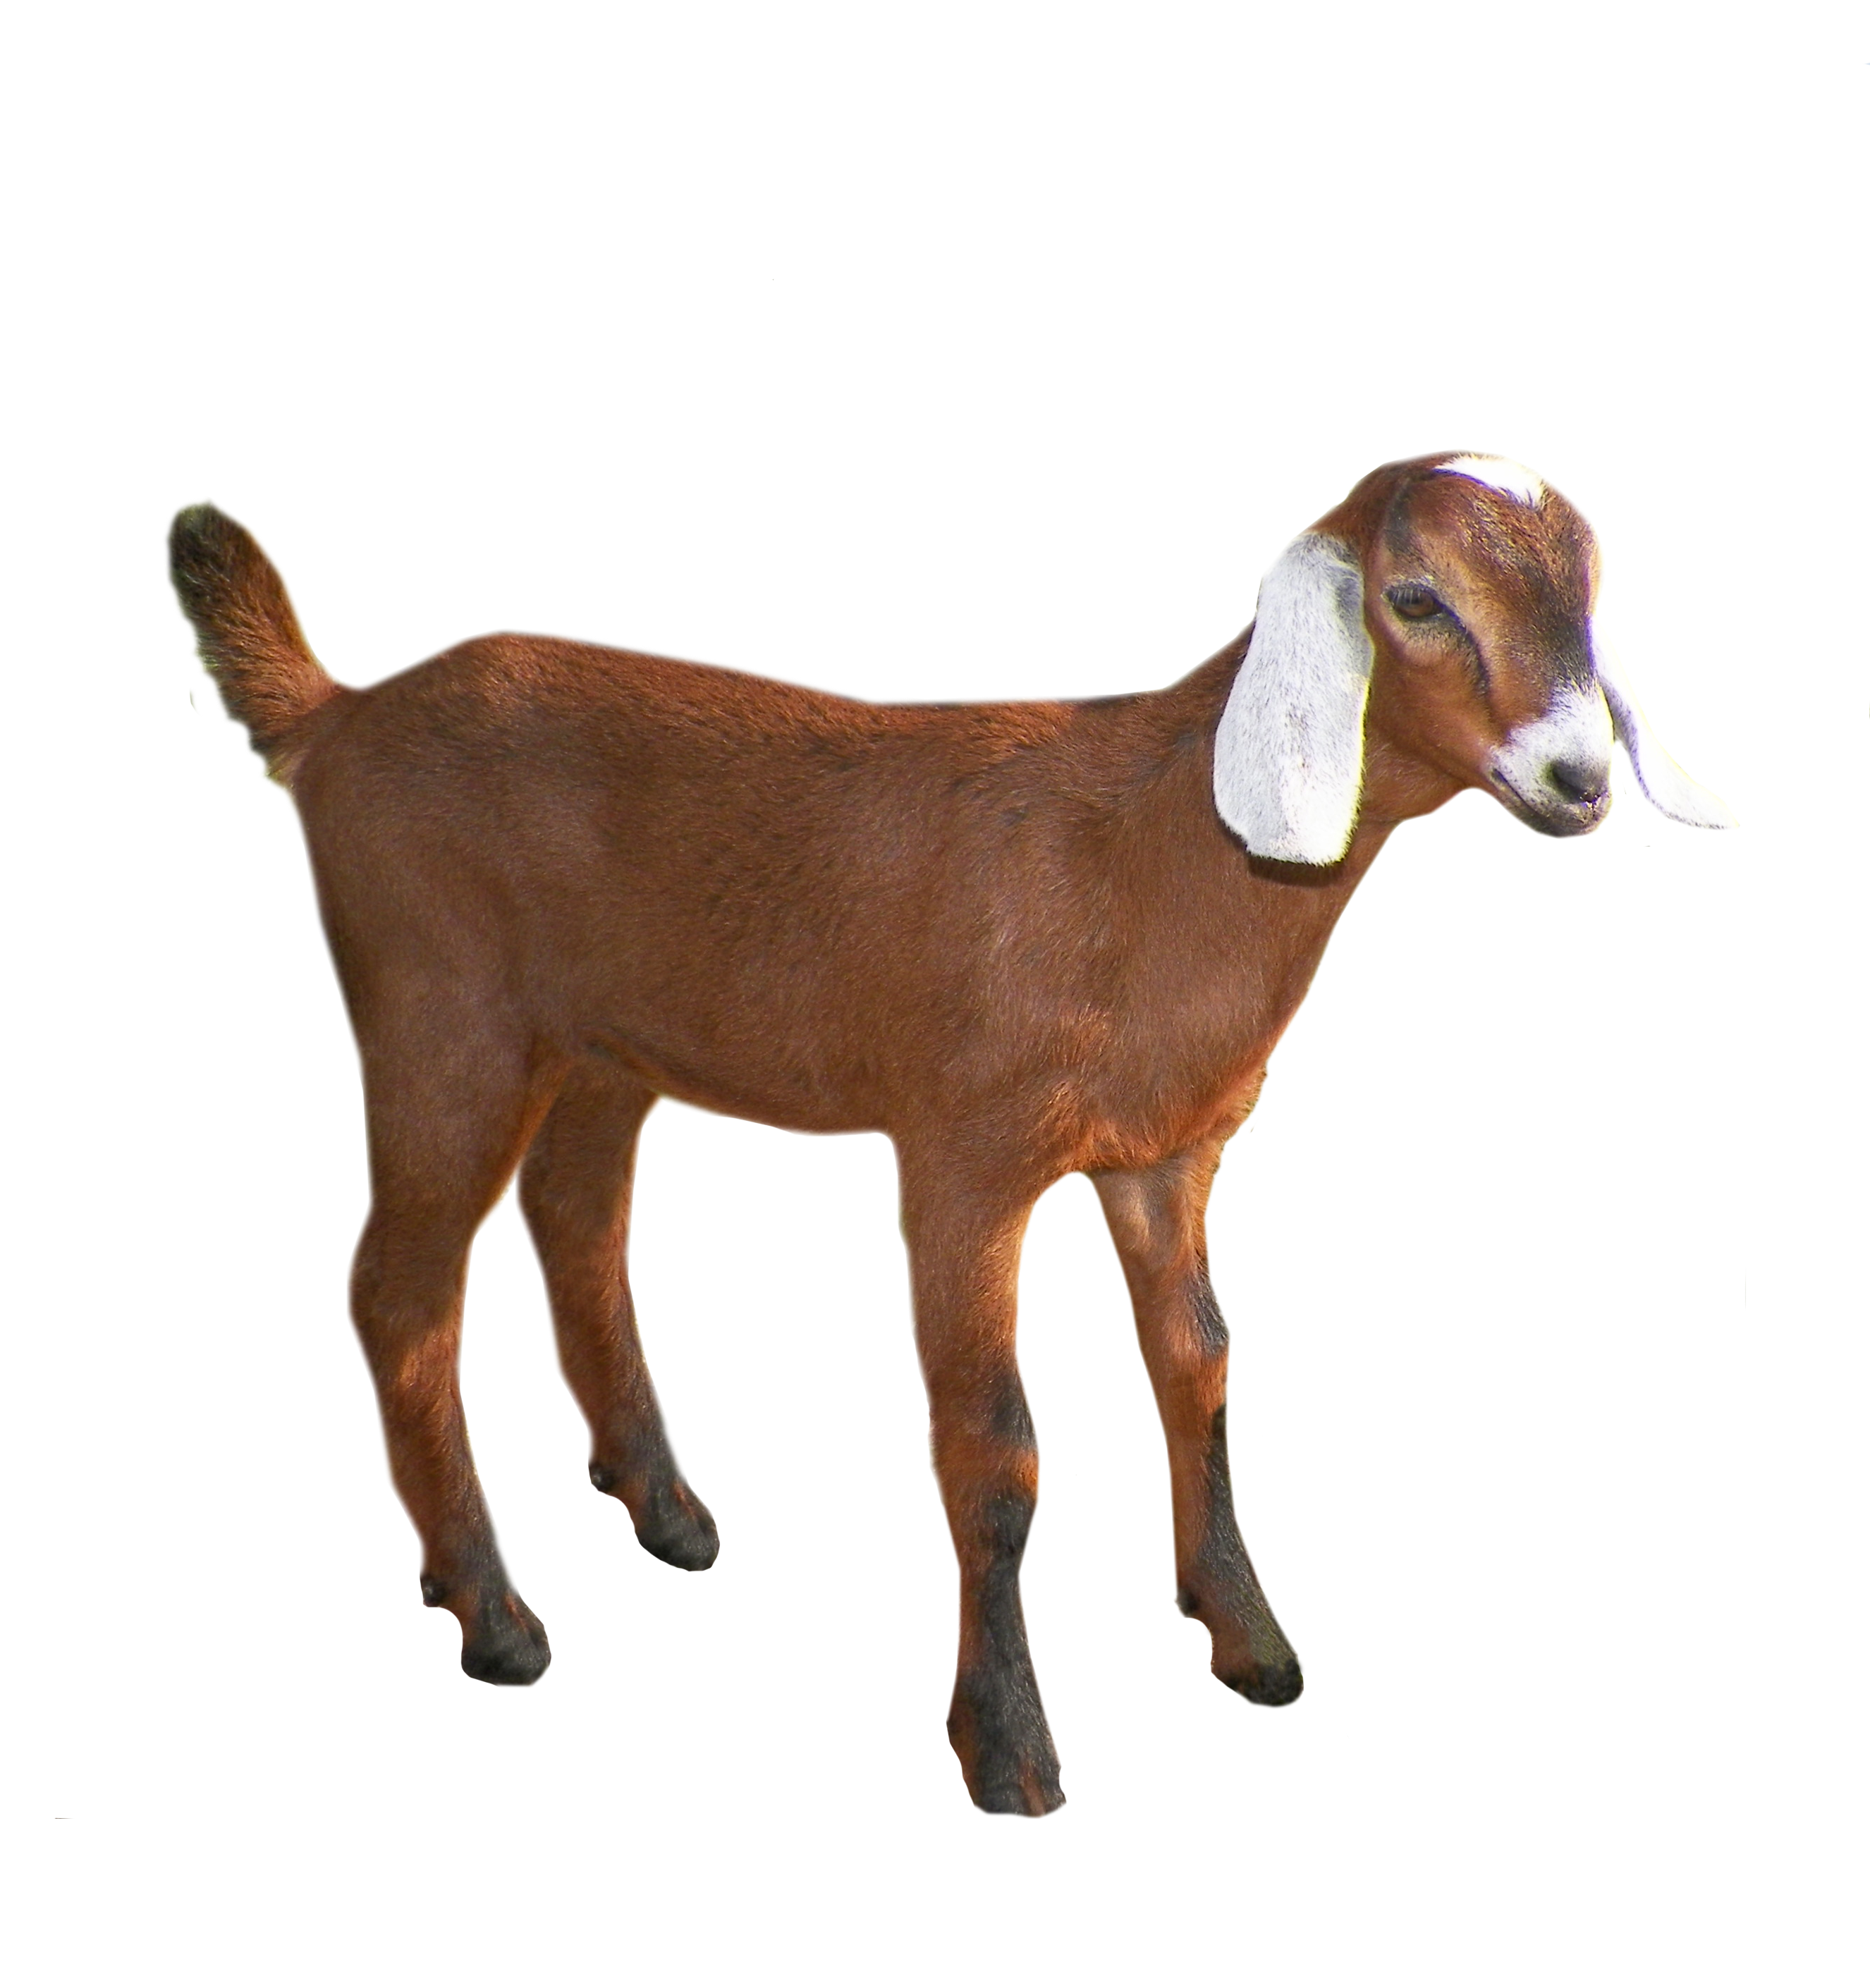 Goat PNG images free download, goat PNG.